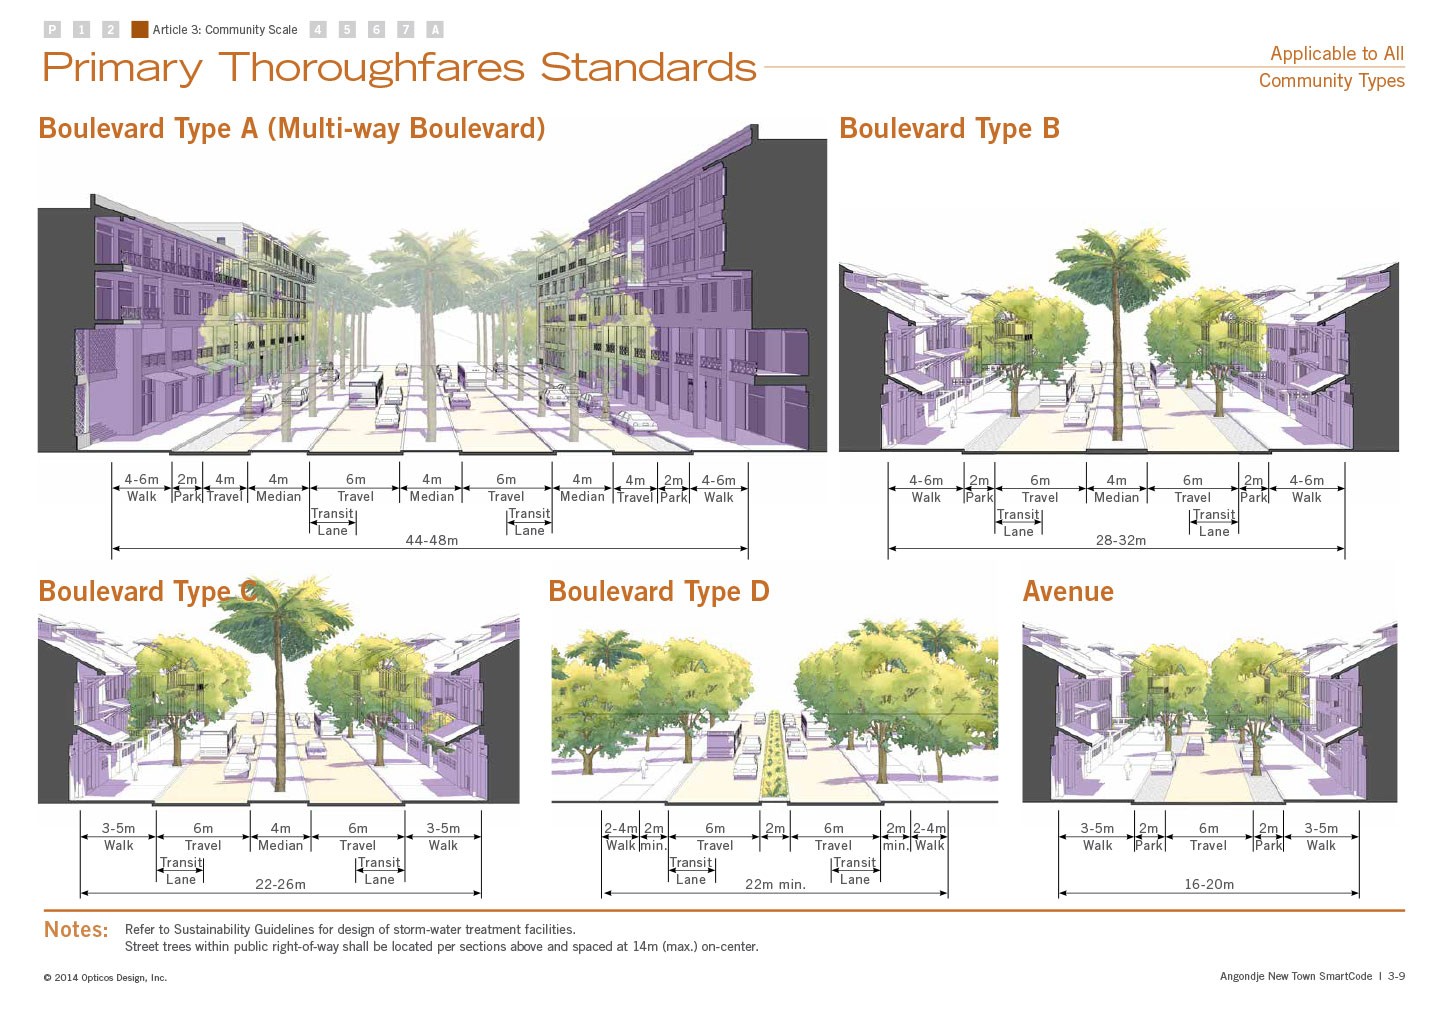 Primary Thoroughfares Standards, showing standards for designing primary thoroughfares